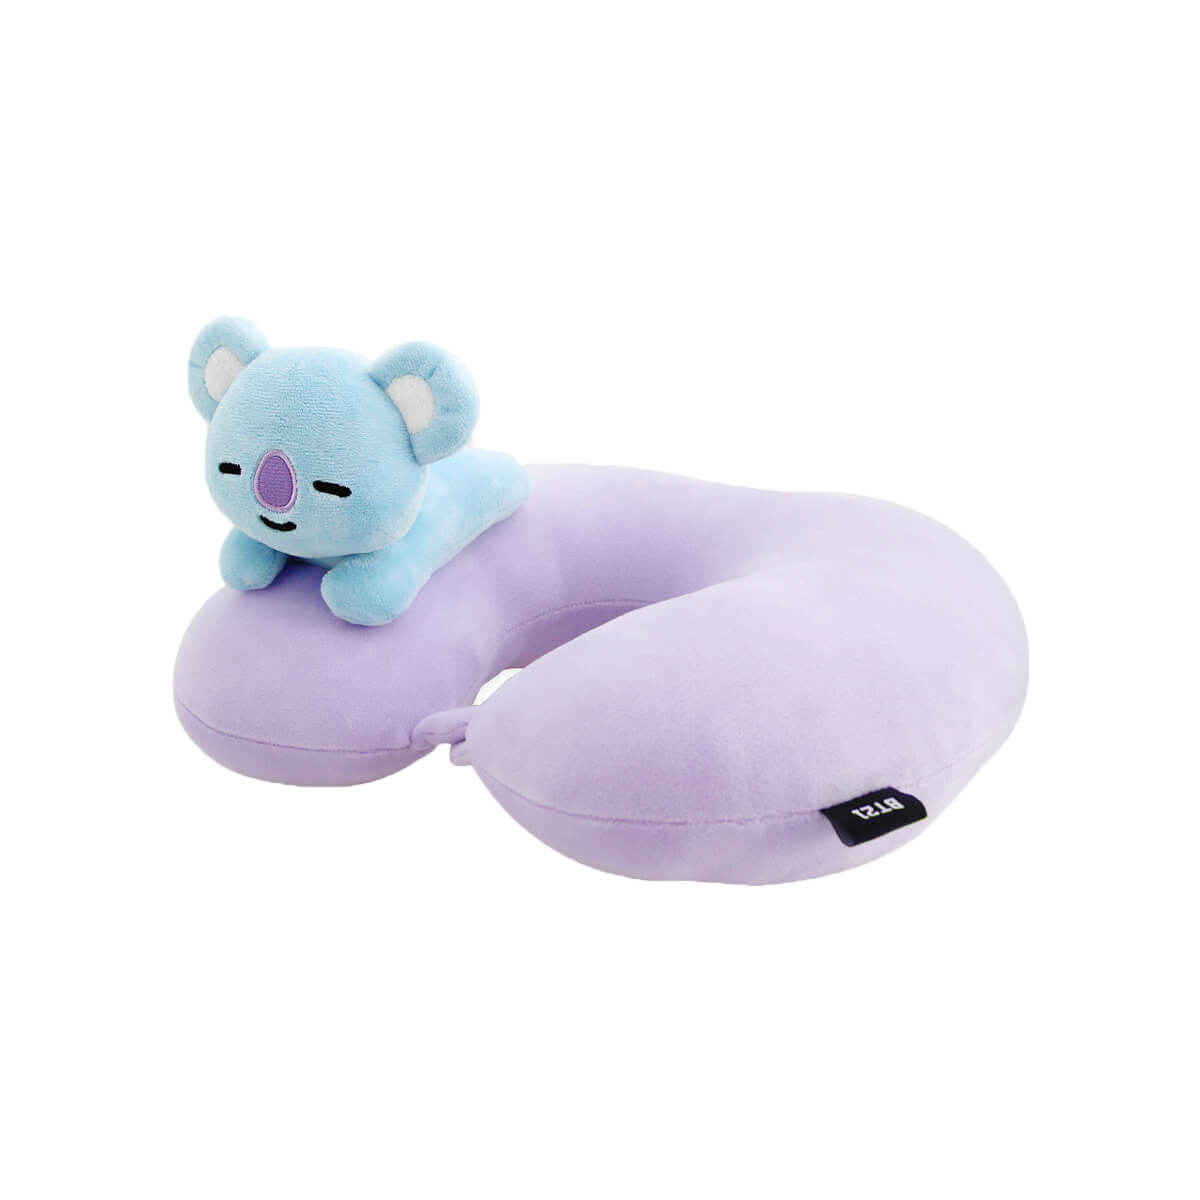 BT21 KOYA Figure Soft Travel Neck Pillow